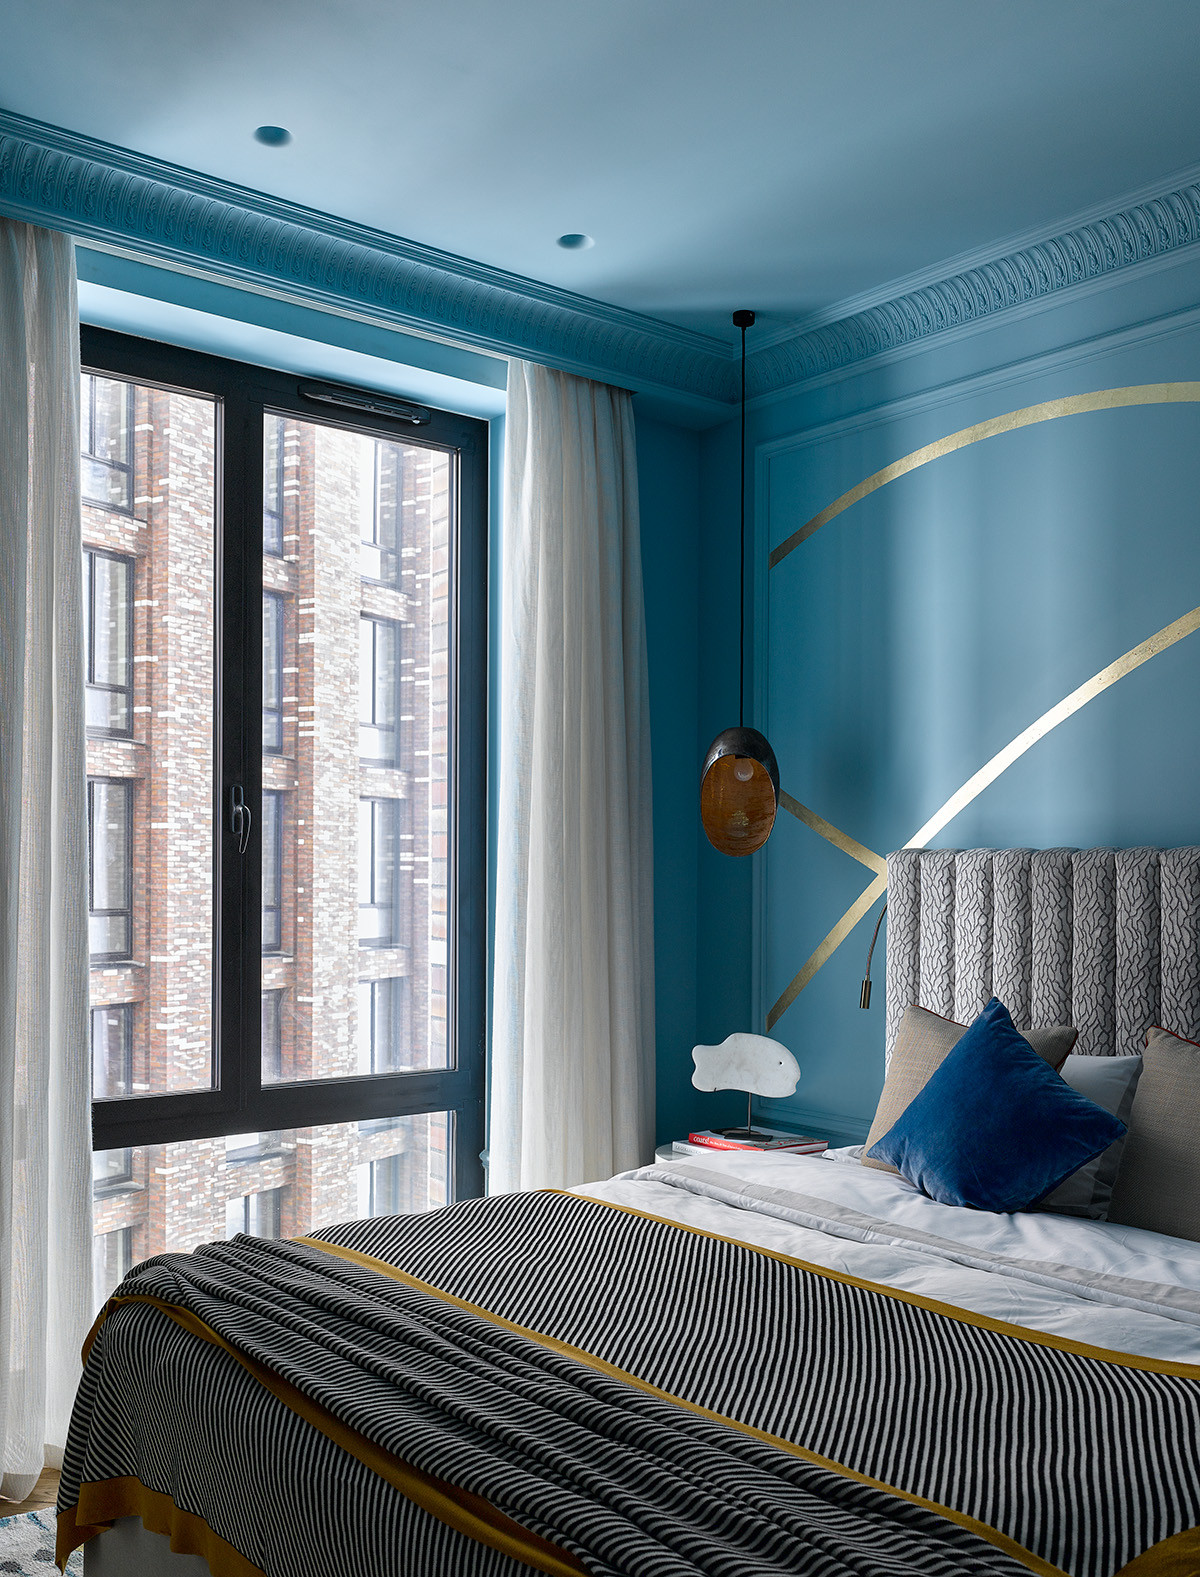 75 Beautiful Turquoise Bedroom Pictures Ideas November 2020 Houzz